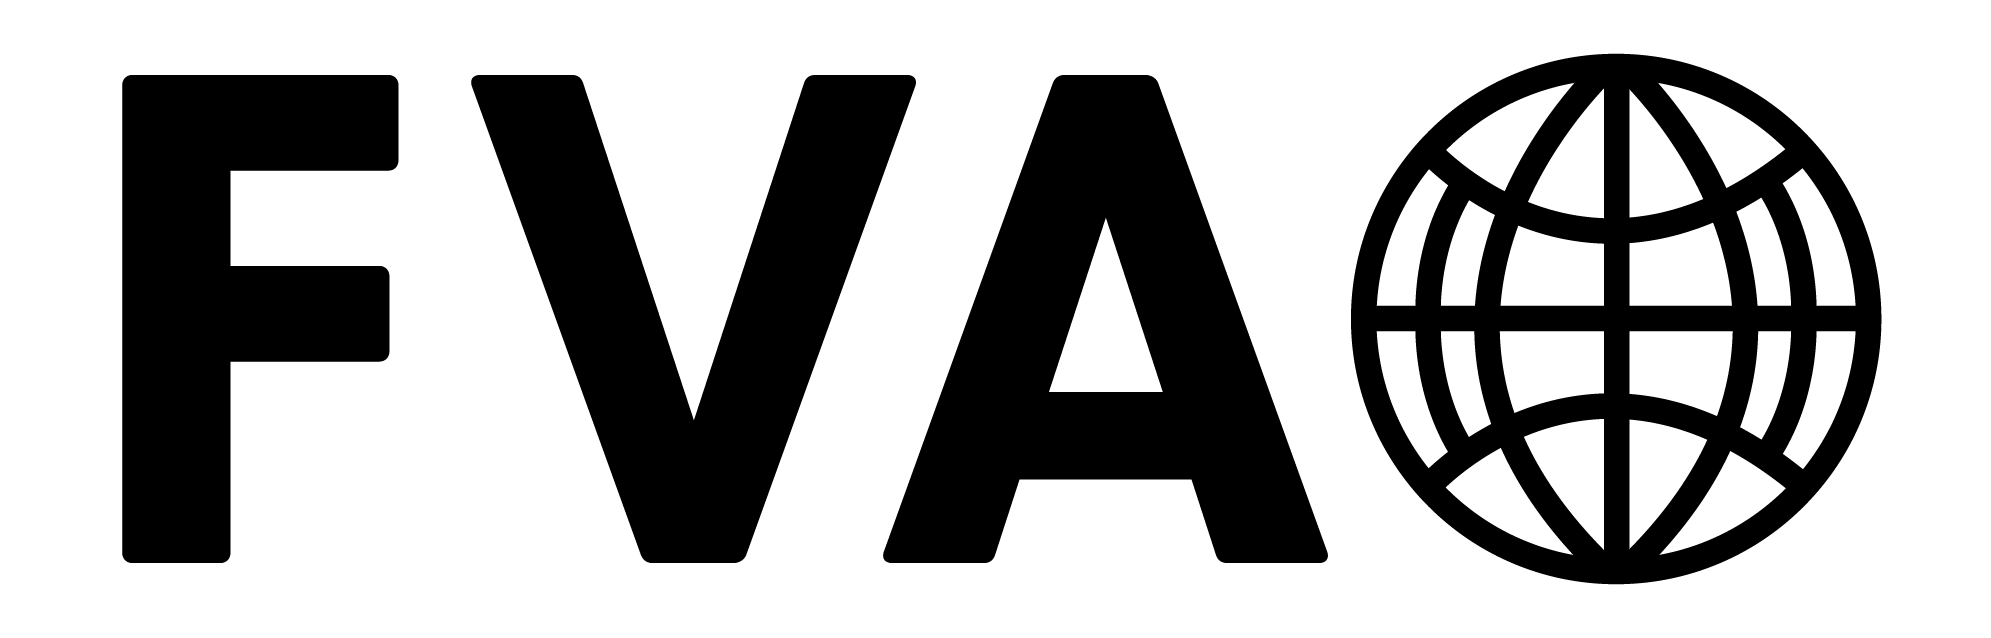 new-small-logo-png.png